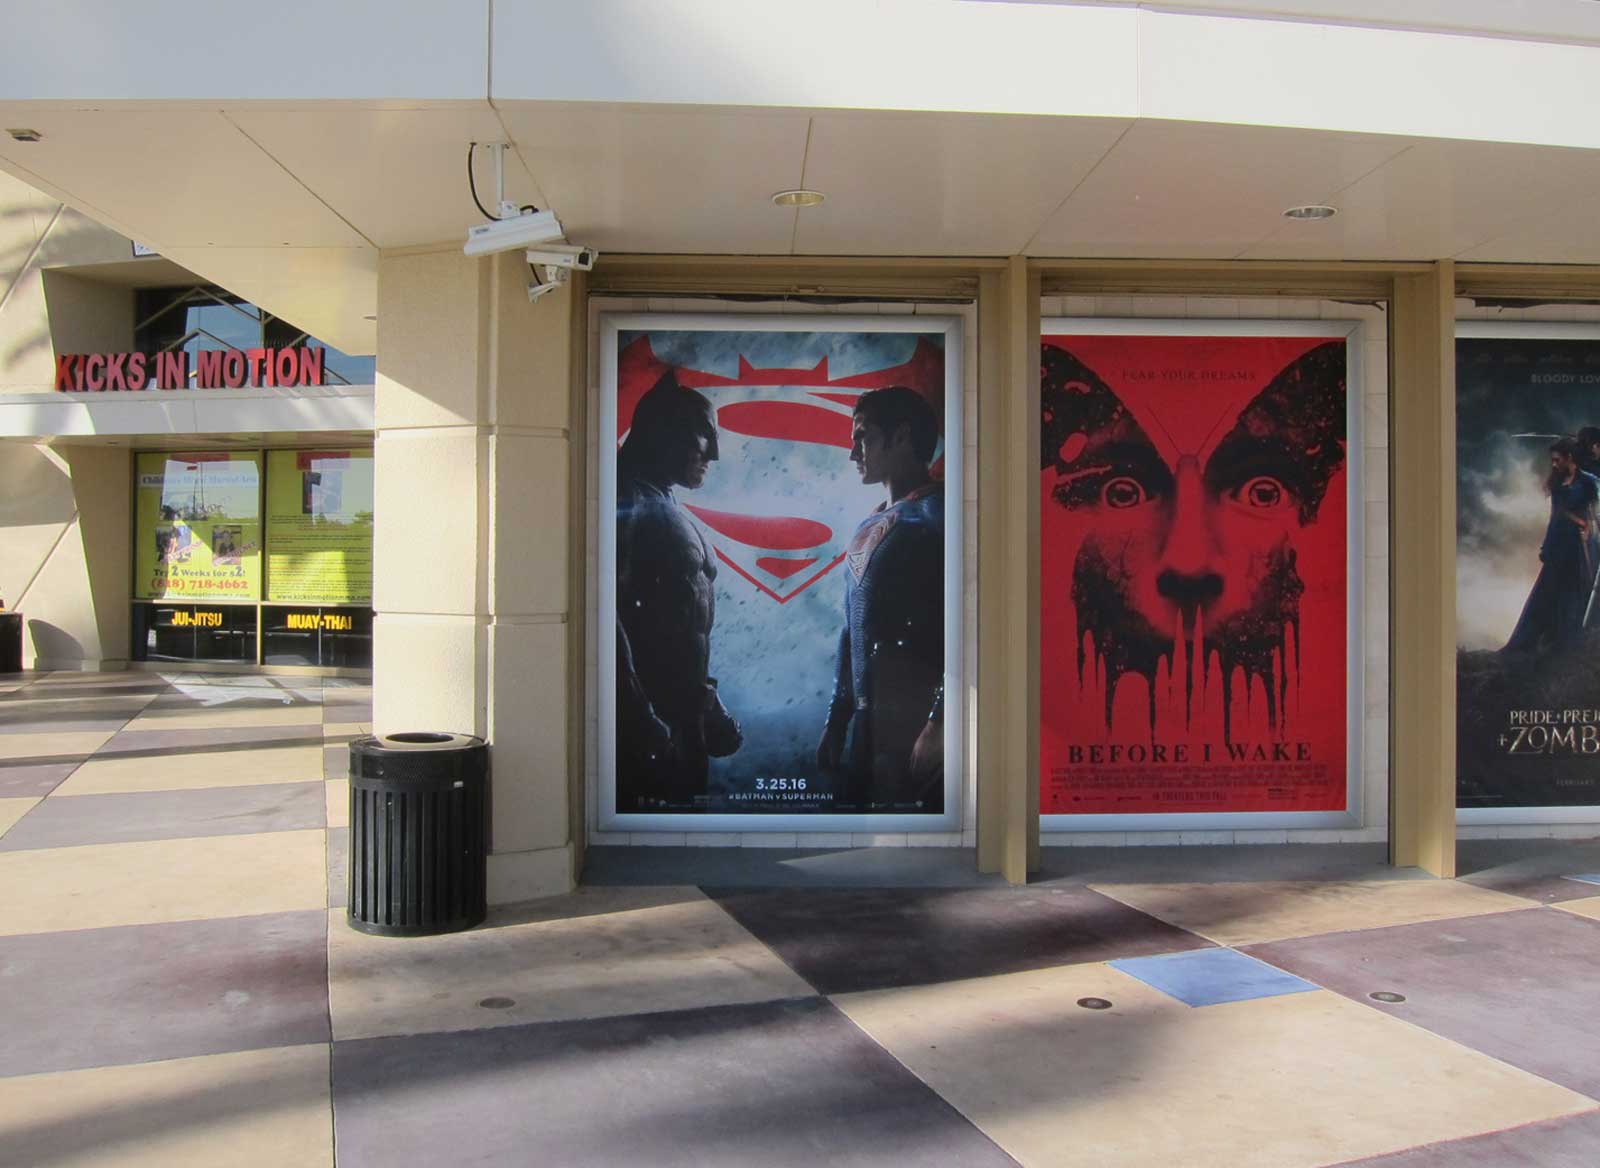 wall_mural_OlsonVisual_BatmanvsSuperman_1